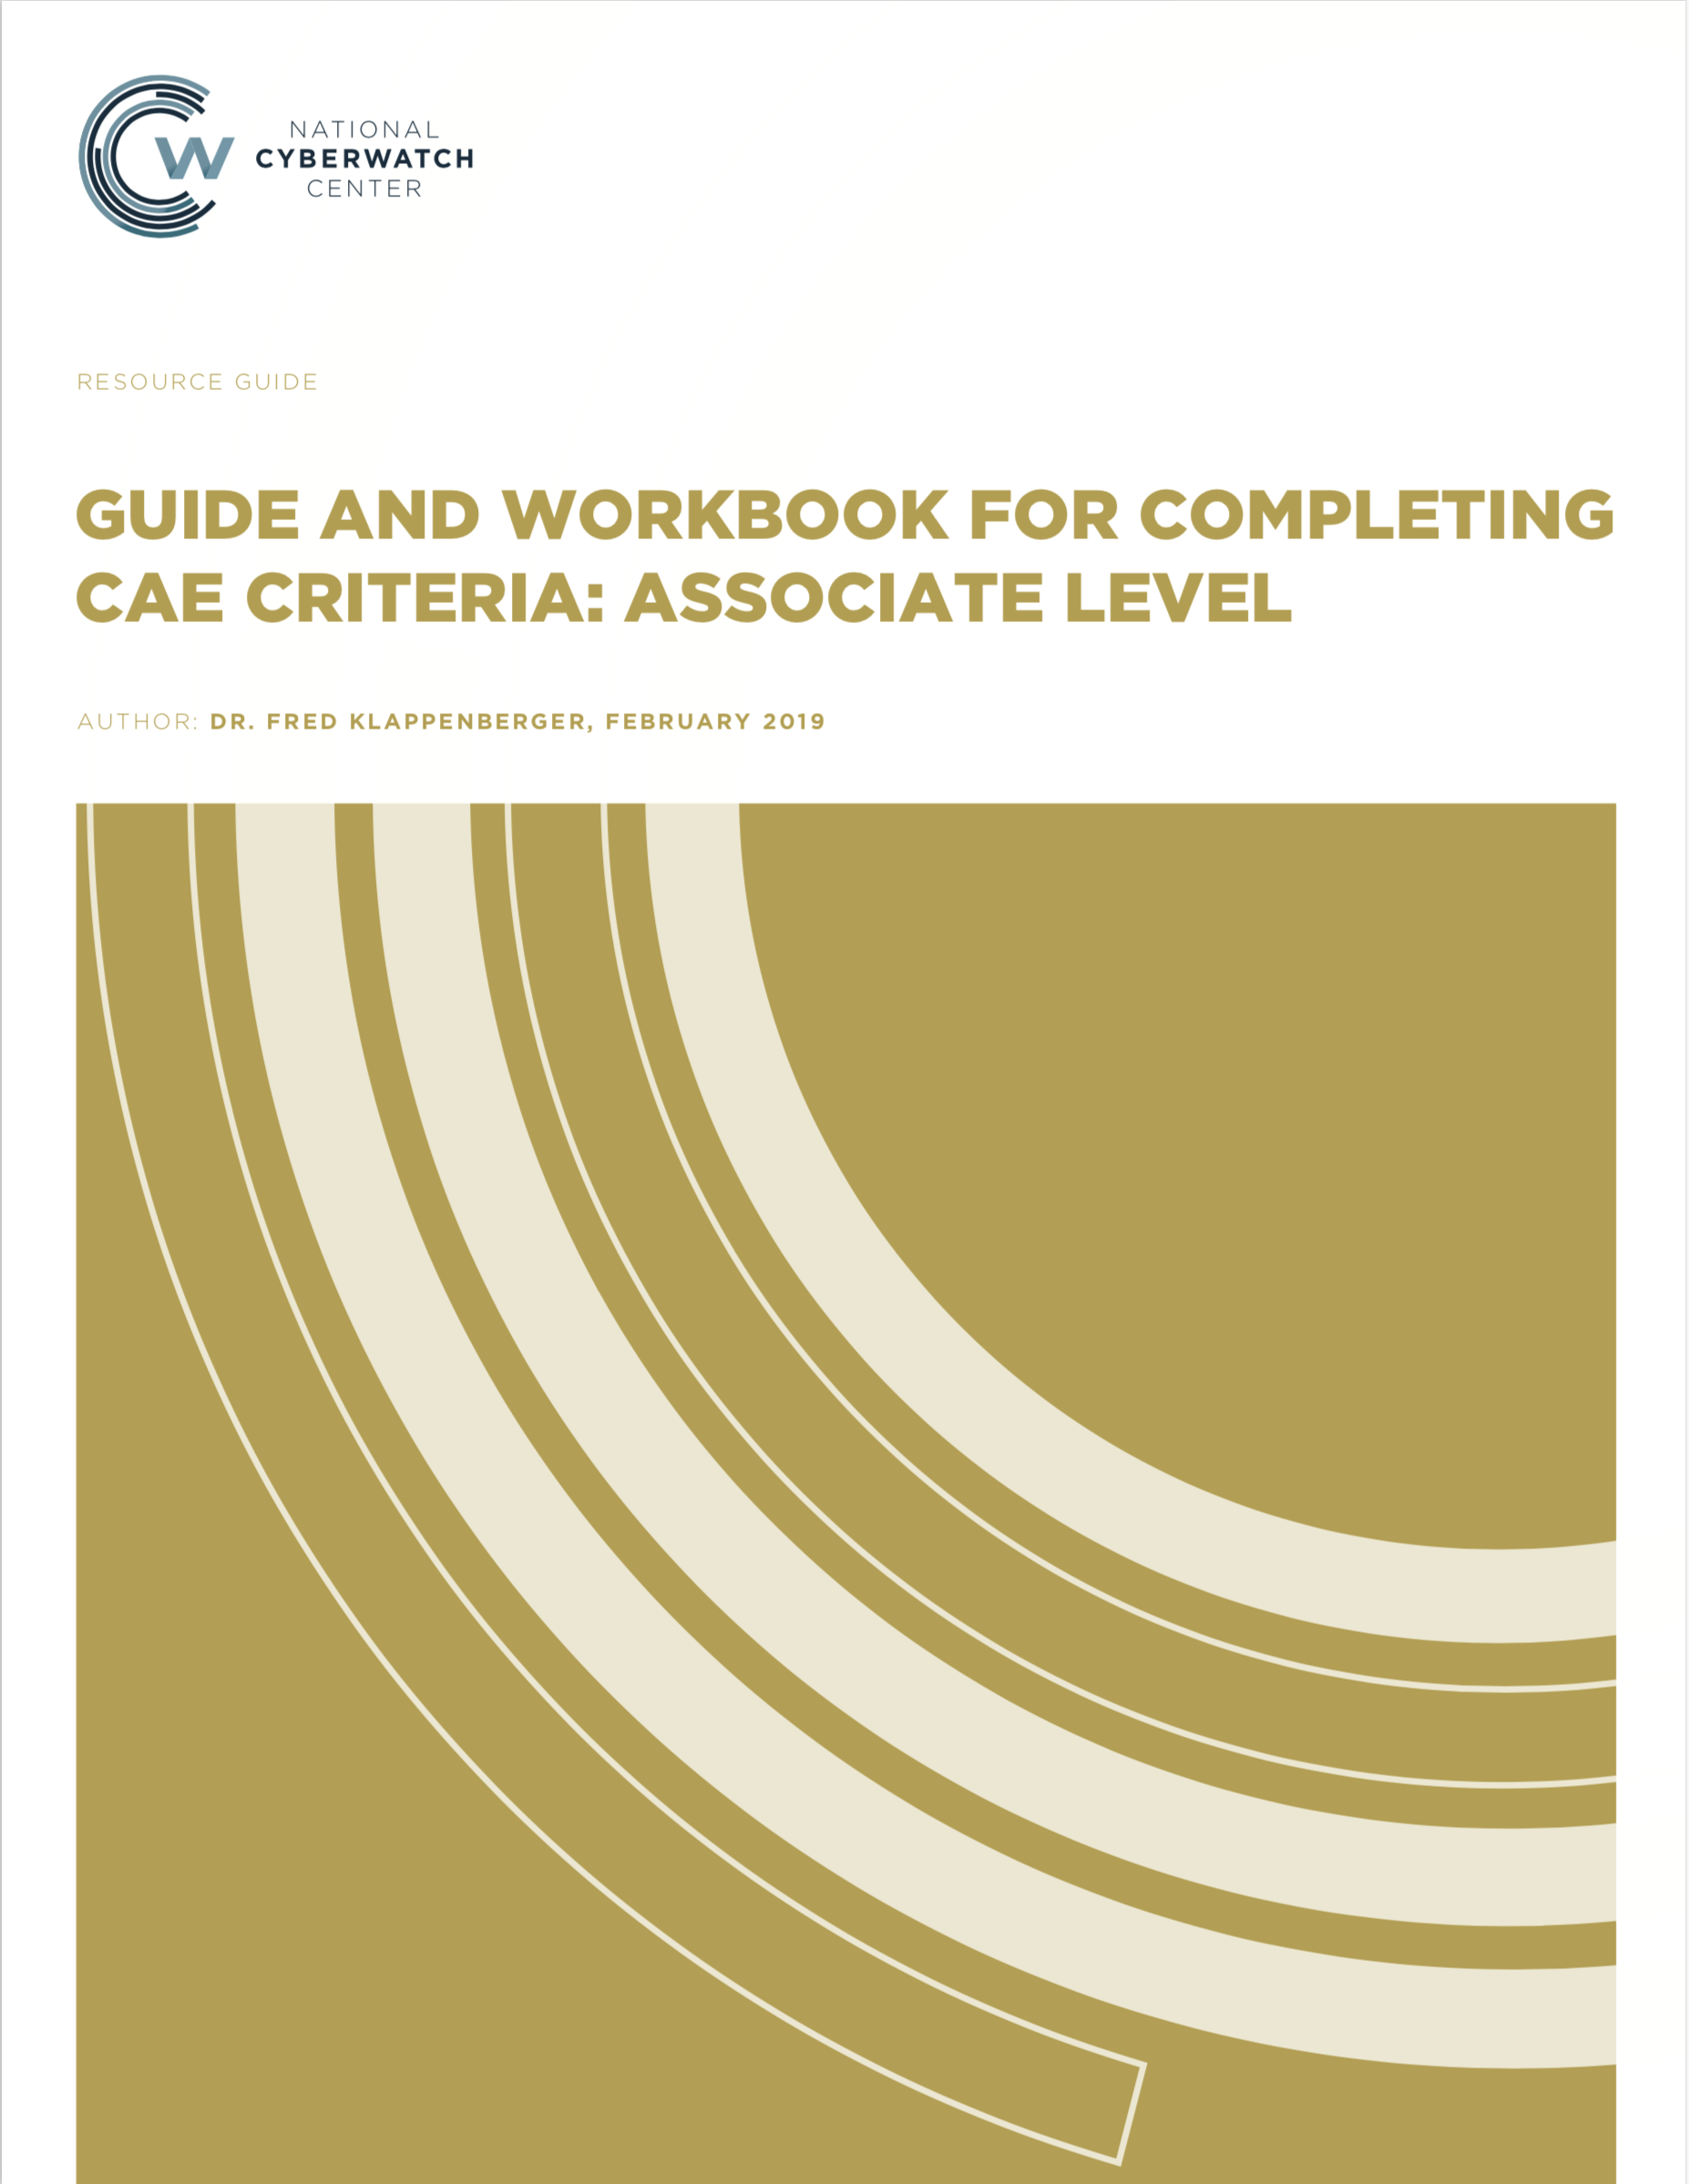 Guide and Workbook for Completing CAE Criteria: Associate Level